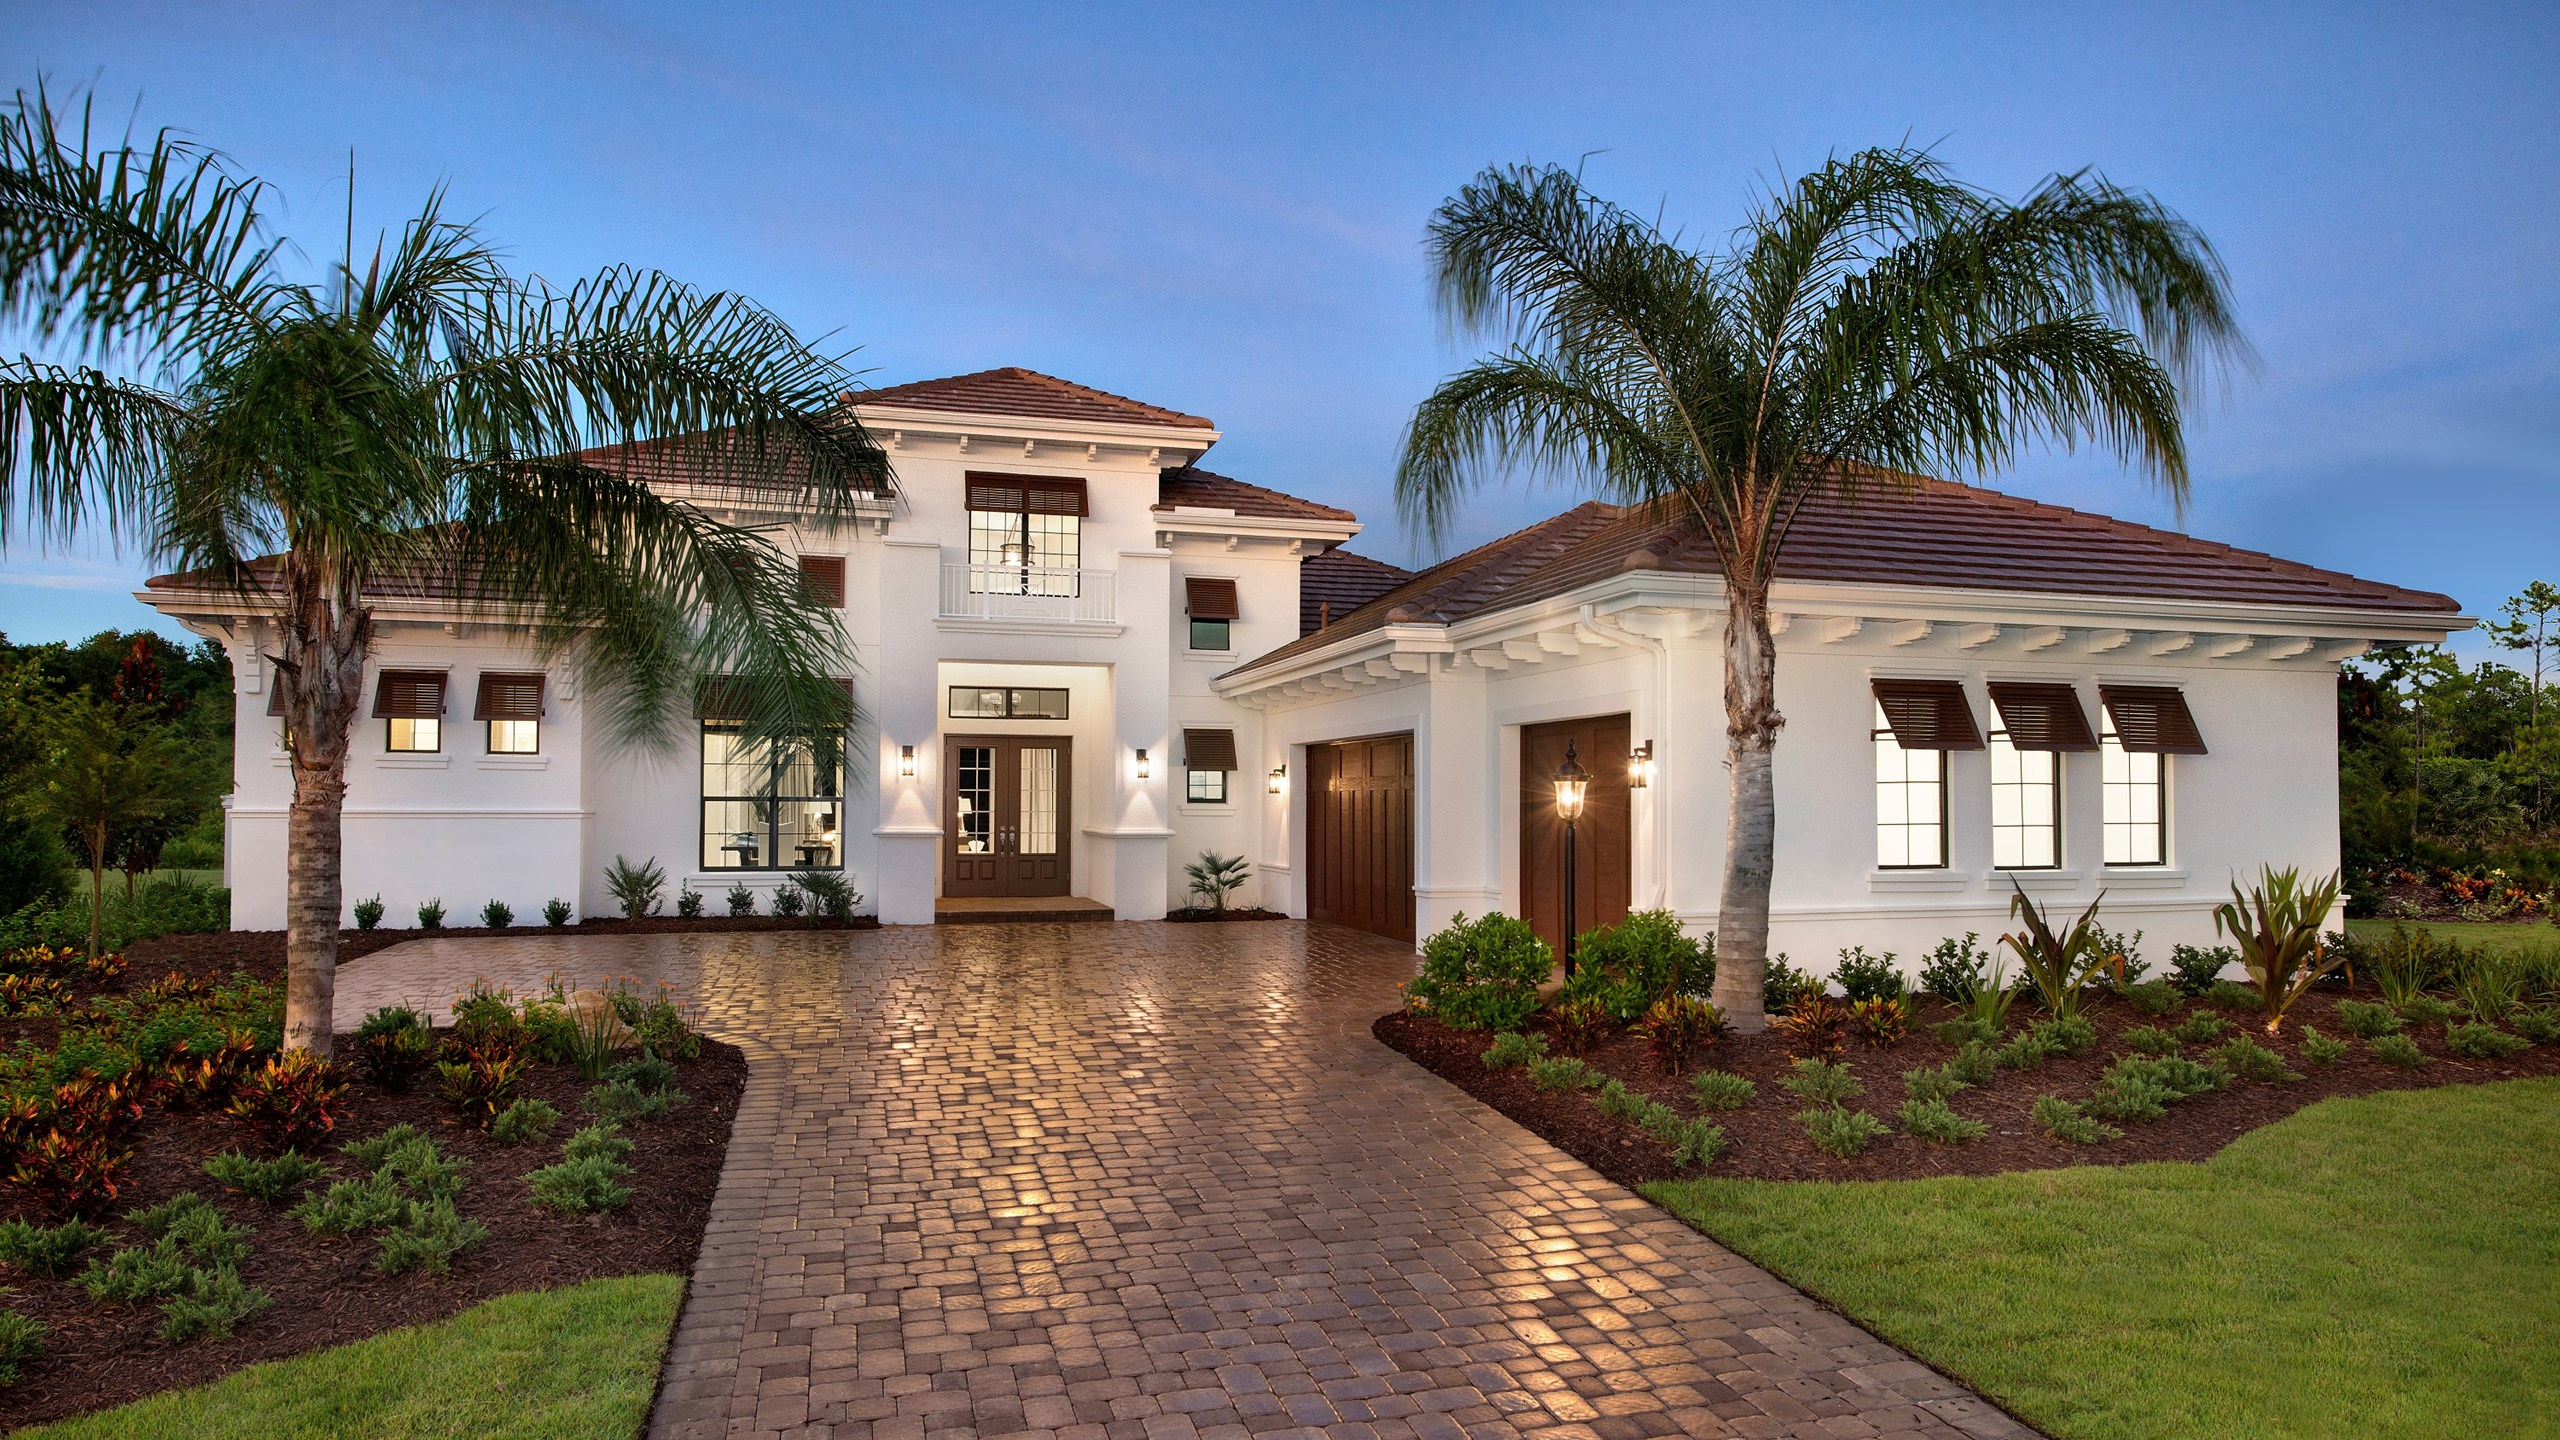 Free Service for Home Buyers | Bradenton Florida Real Estate | Bradenton Florida Realtor | New Homes Communities